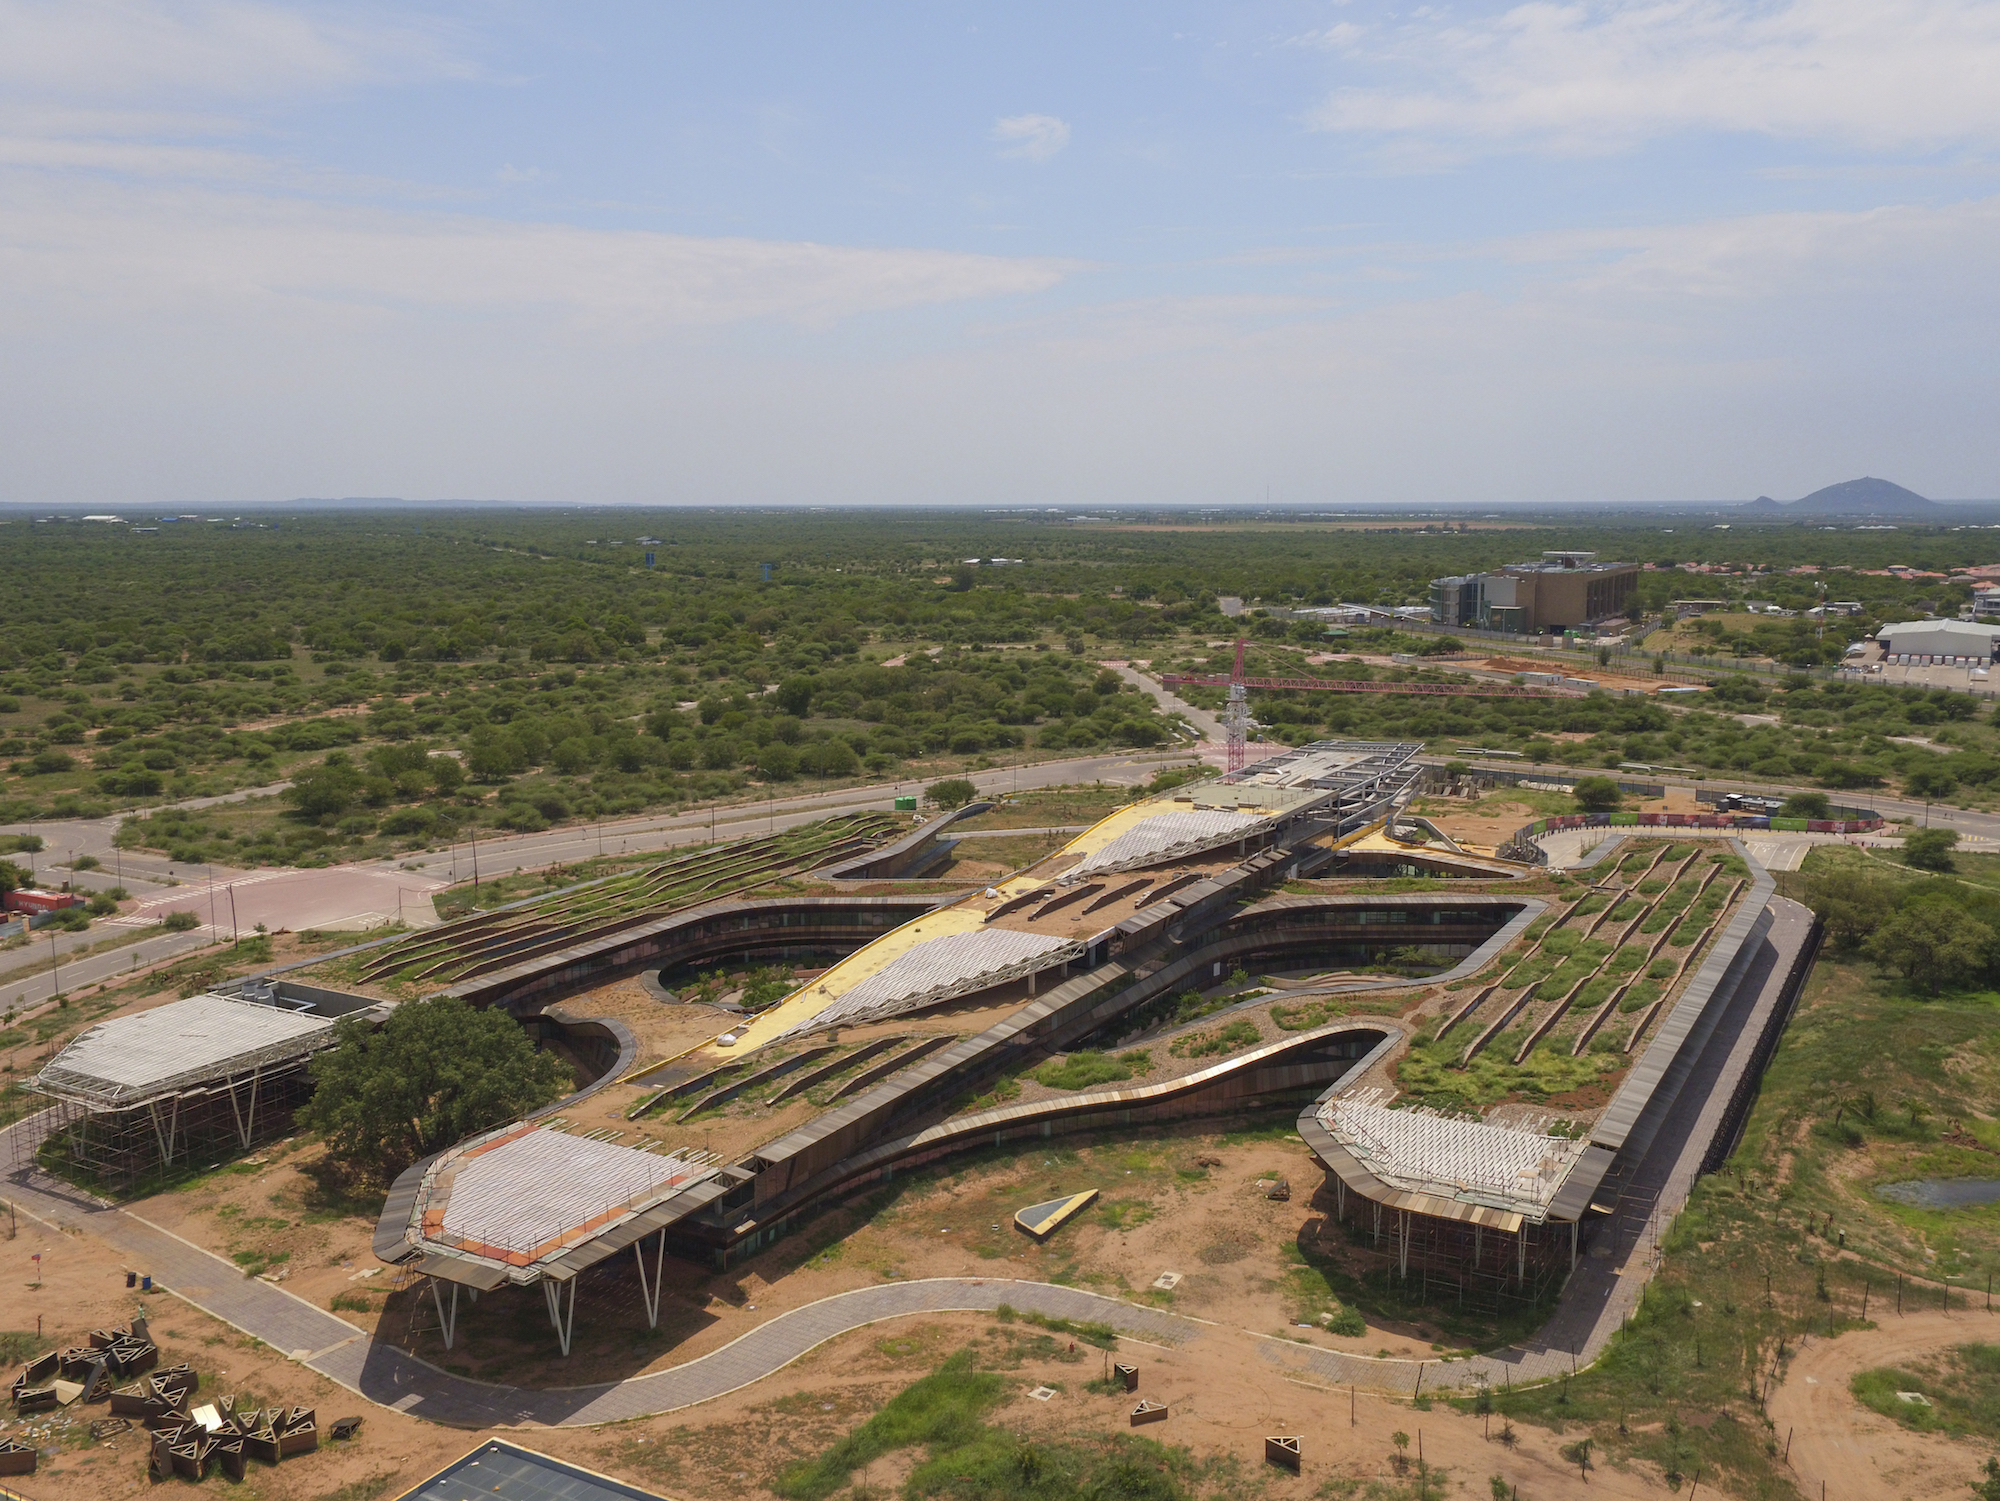 Aerial image of the Botswana Innovation Hub and its spaceship-like form